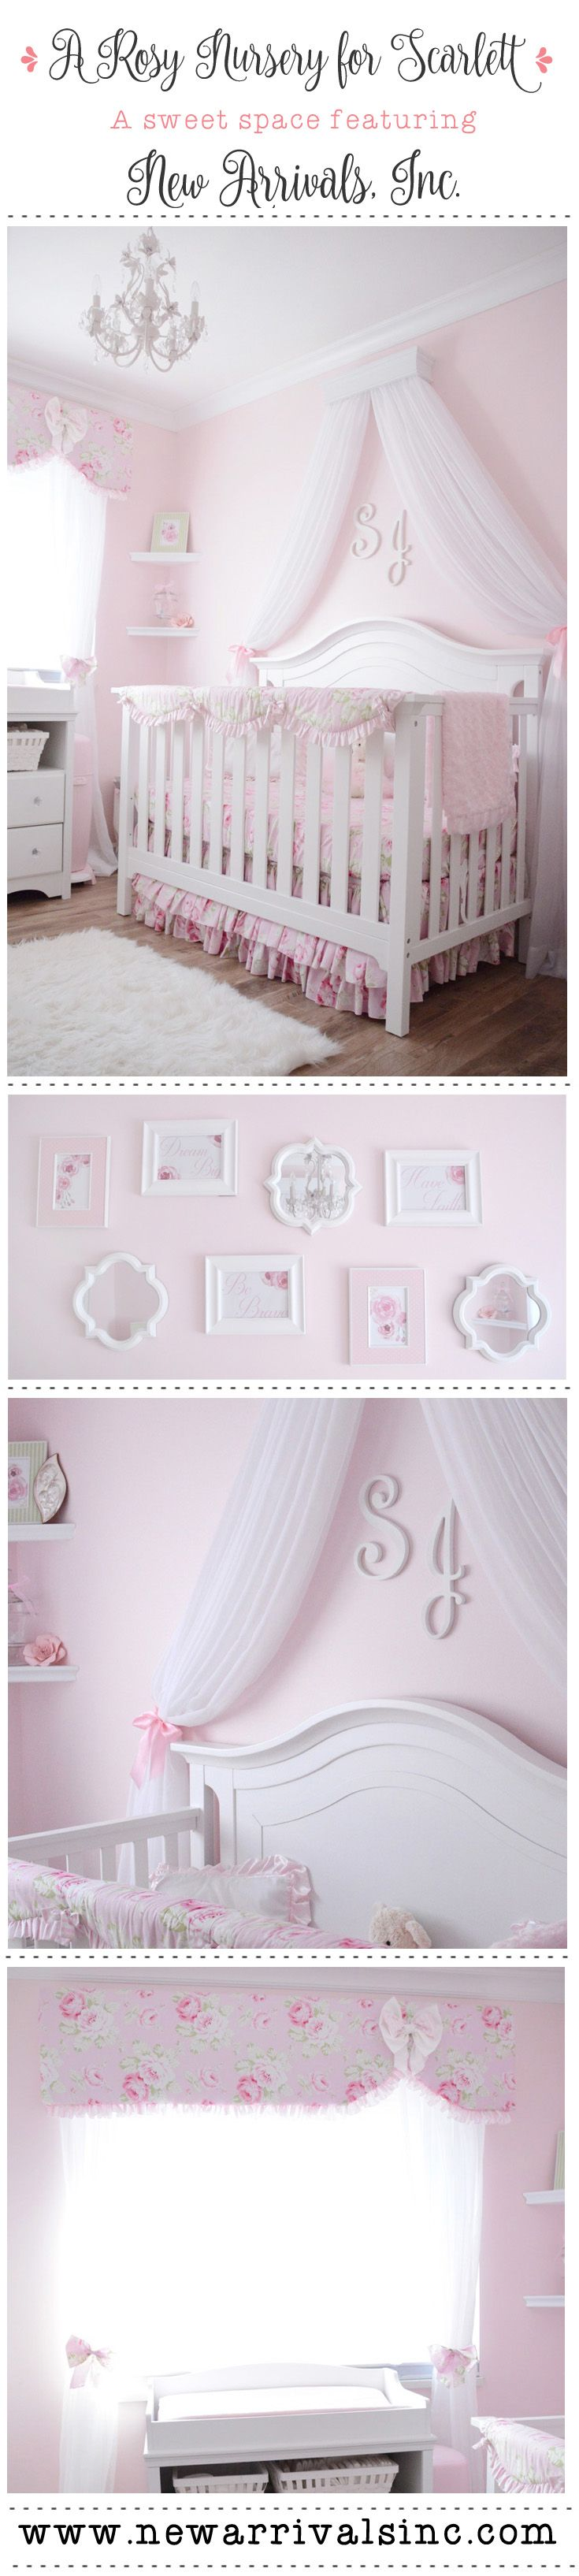 A rosy baby girl nursery featuring New Arrivals, Inc. Pink Desert Rose Baby Bedding! Our #1 seller for baby girls!